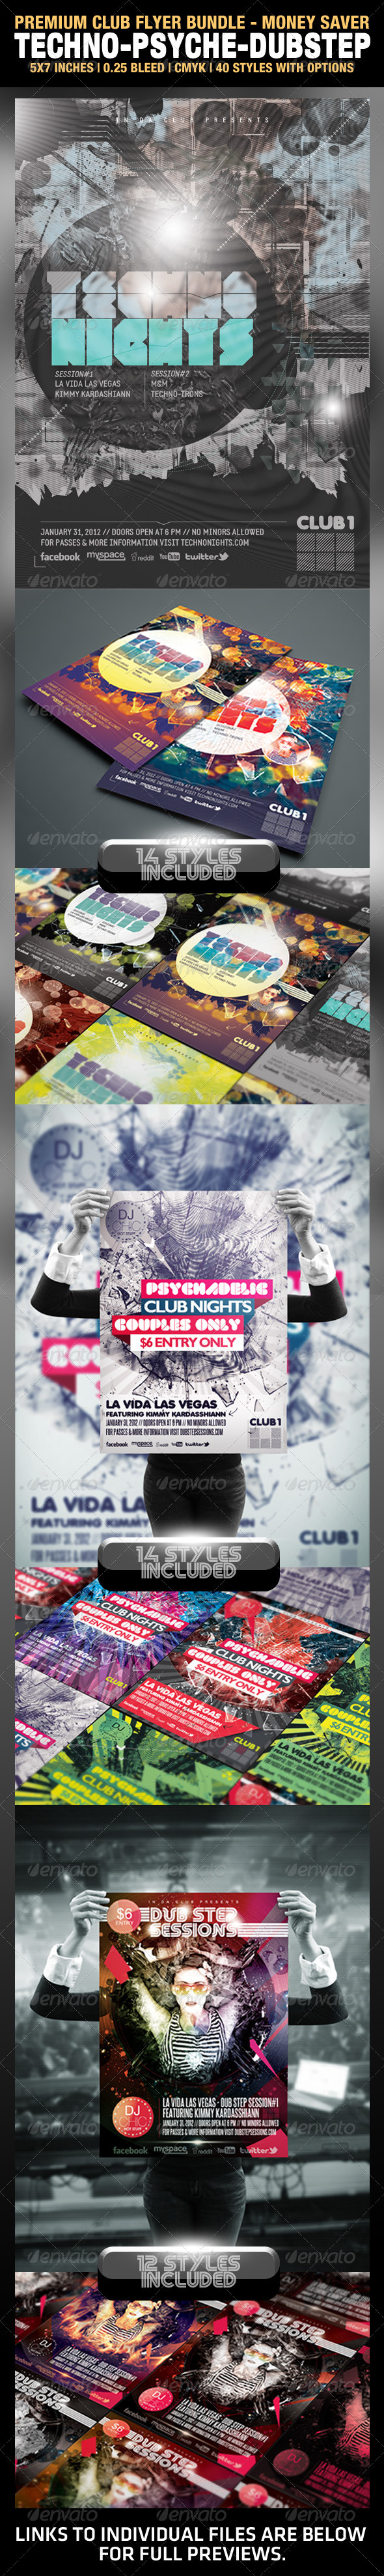 GraphicRiver Techno Psychedelic and Dub-step Club Flyers 1773669